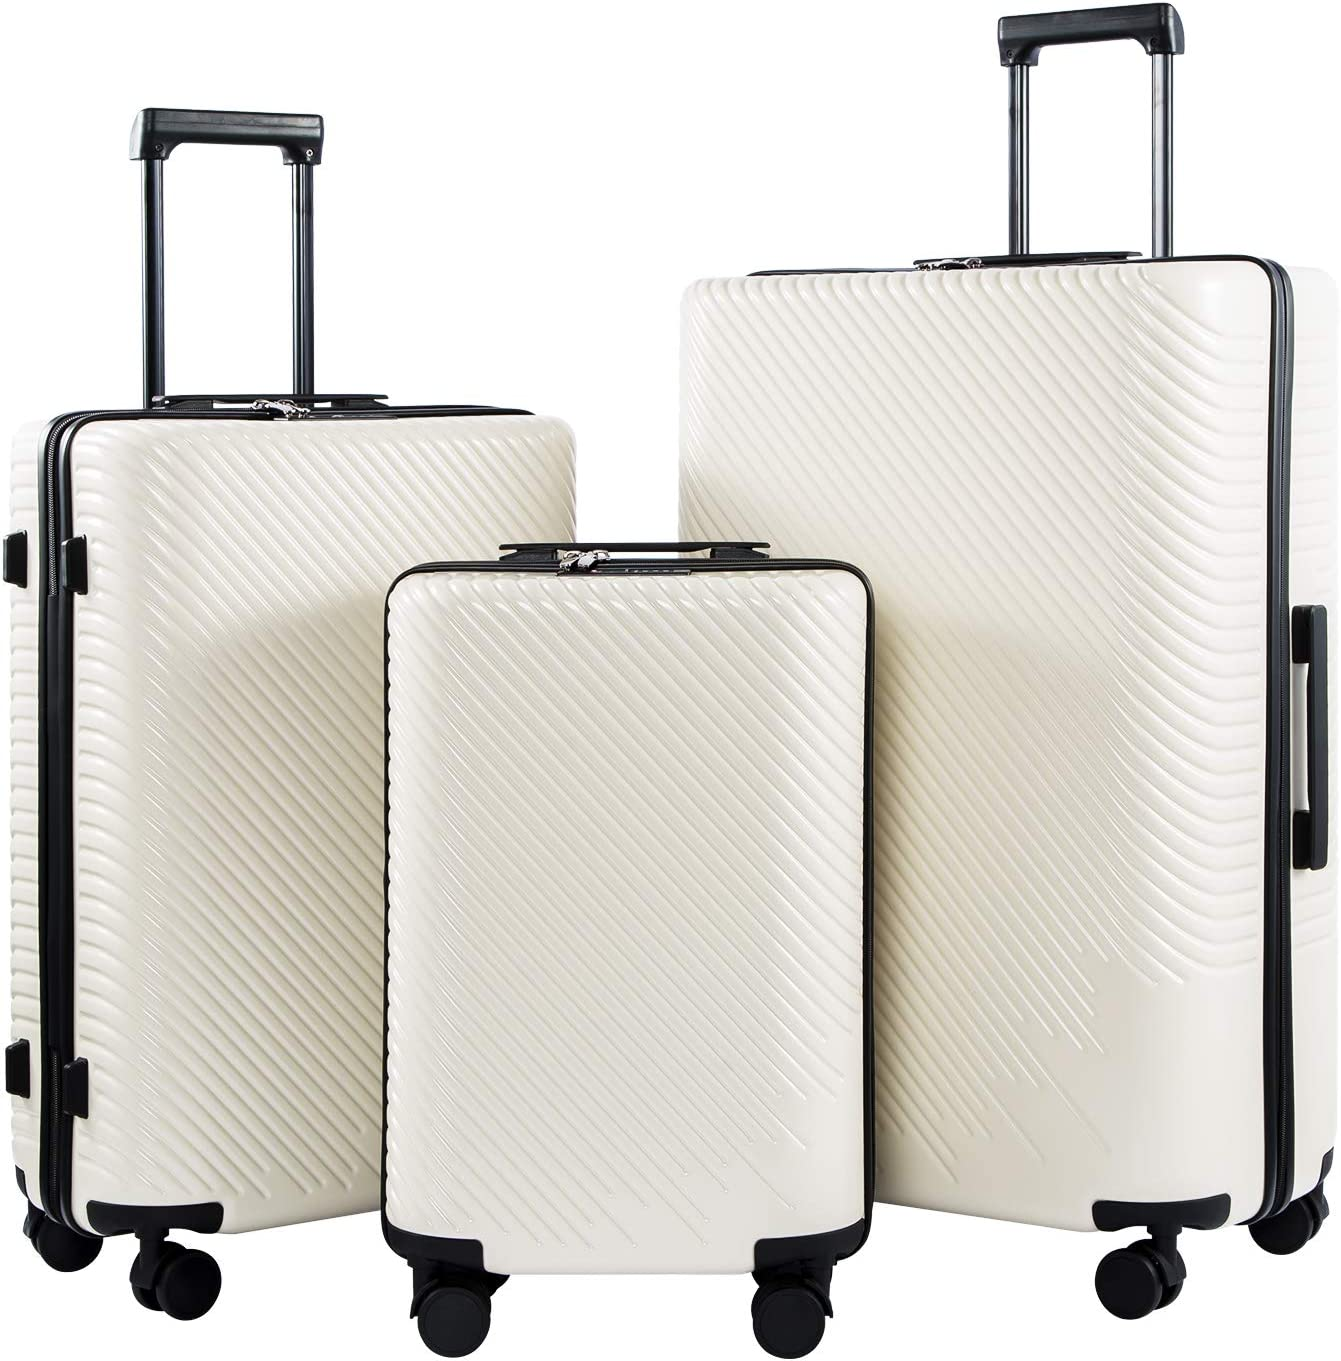 Coolife Luggage 3 Piece Sets PC ABS Spinner Suitcase carry on Fashion White, One_Size